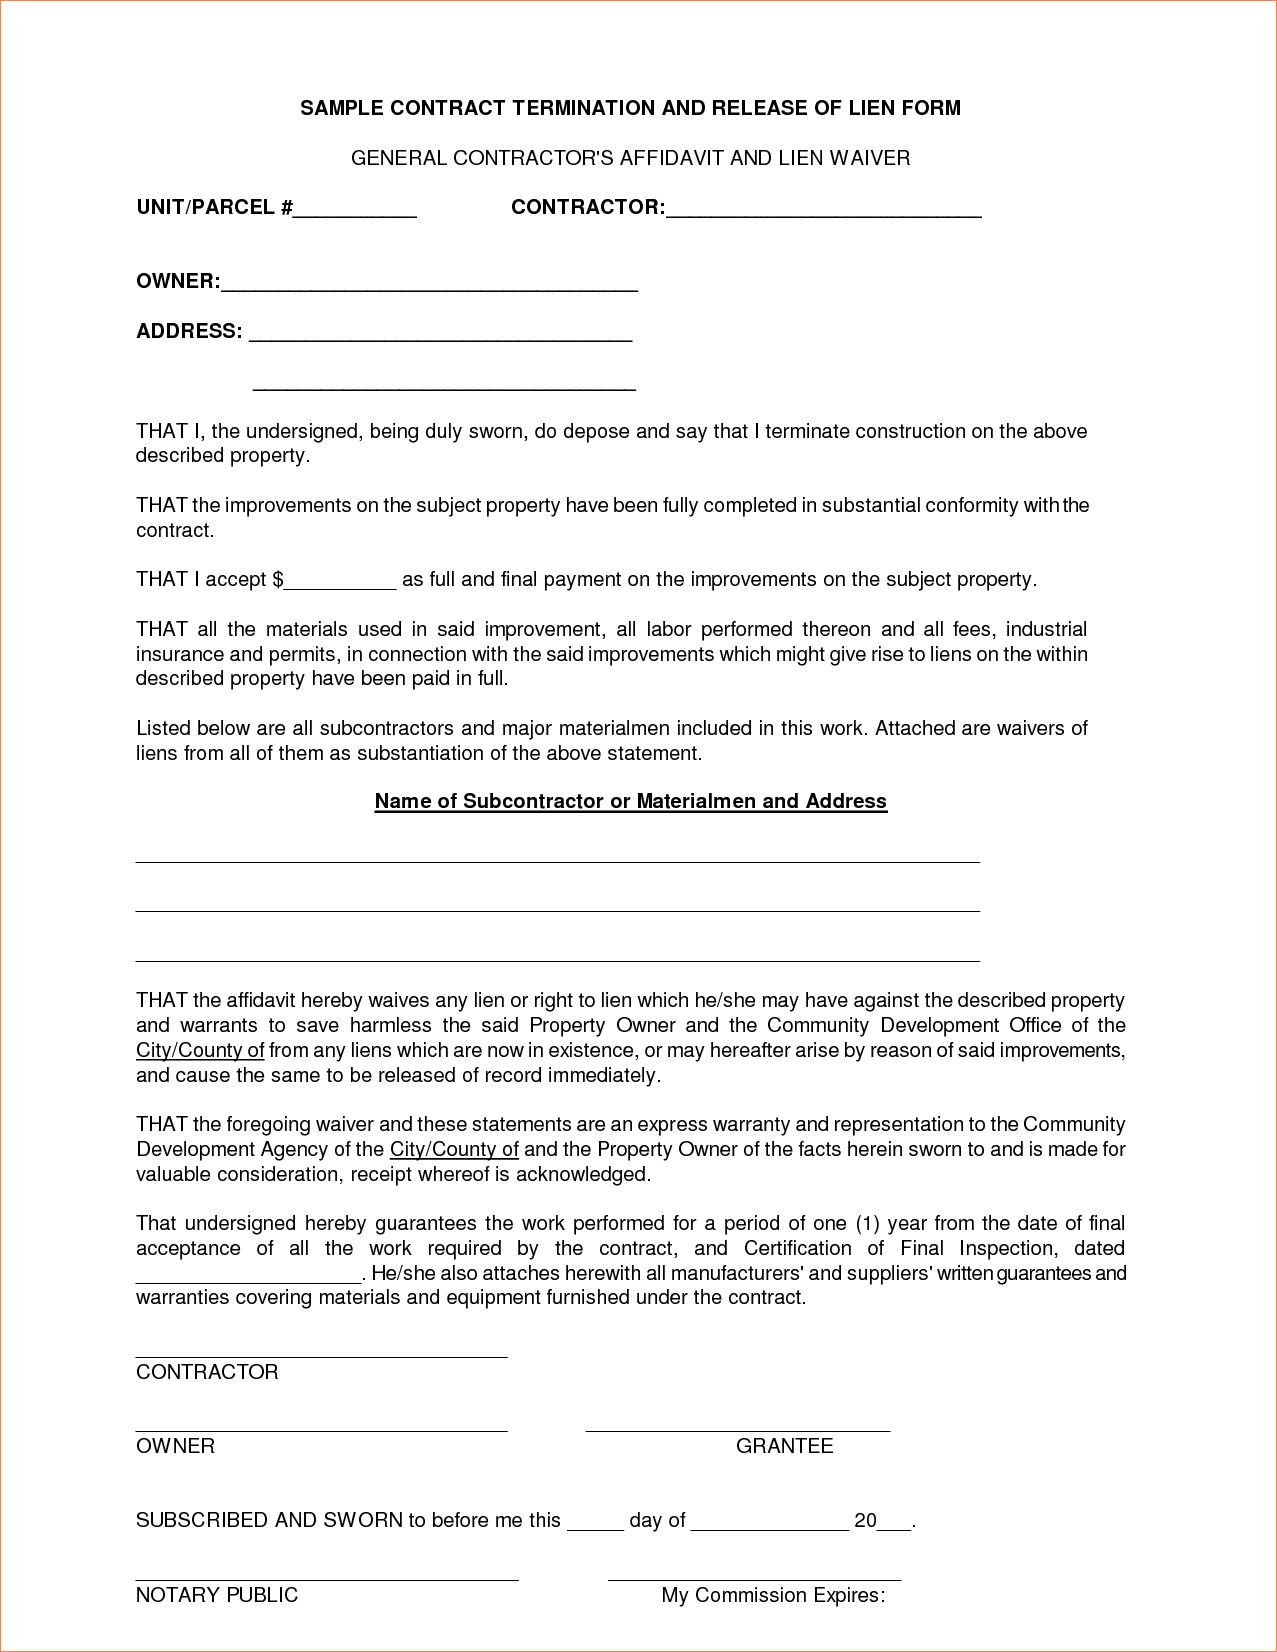 22 Images of General Contract Template   leseriail.com